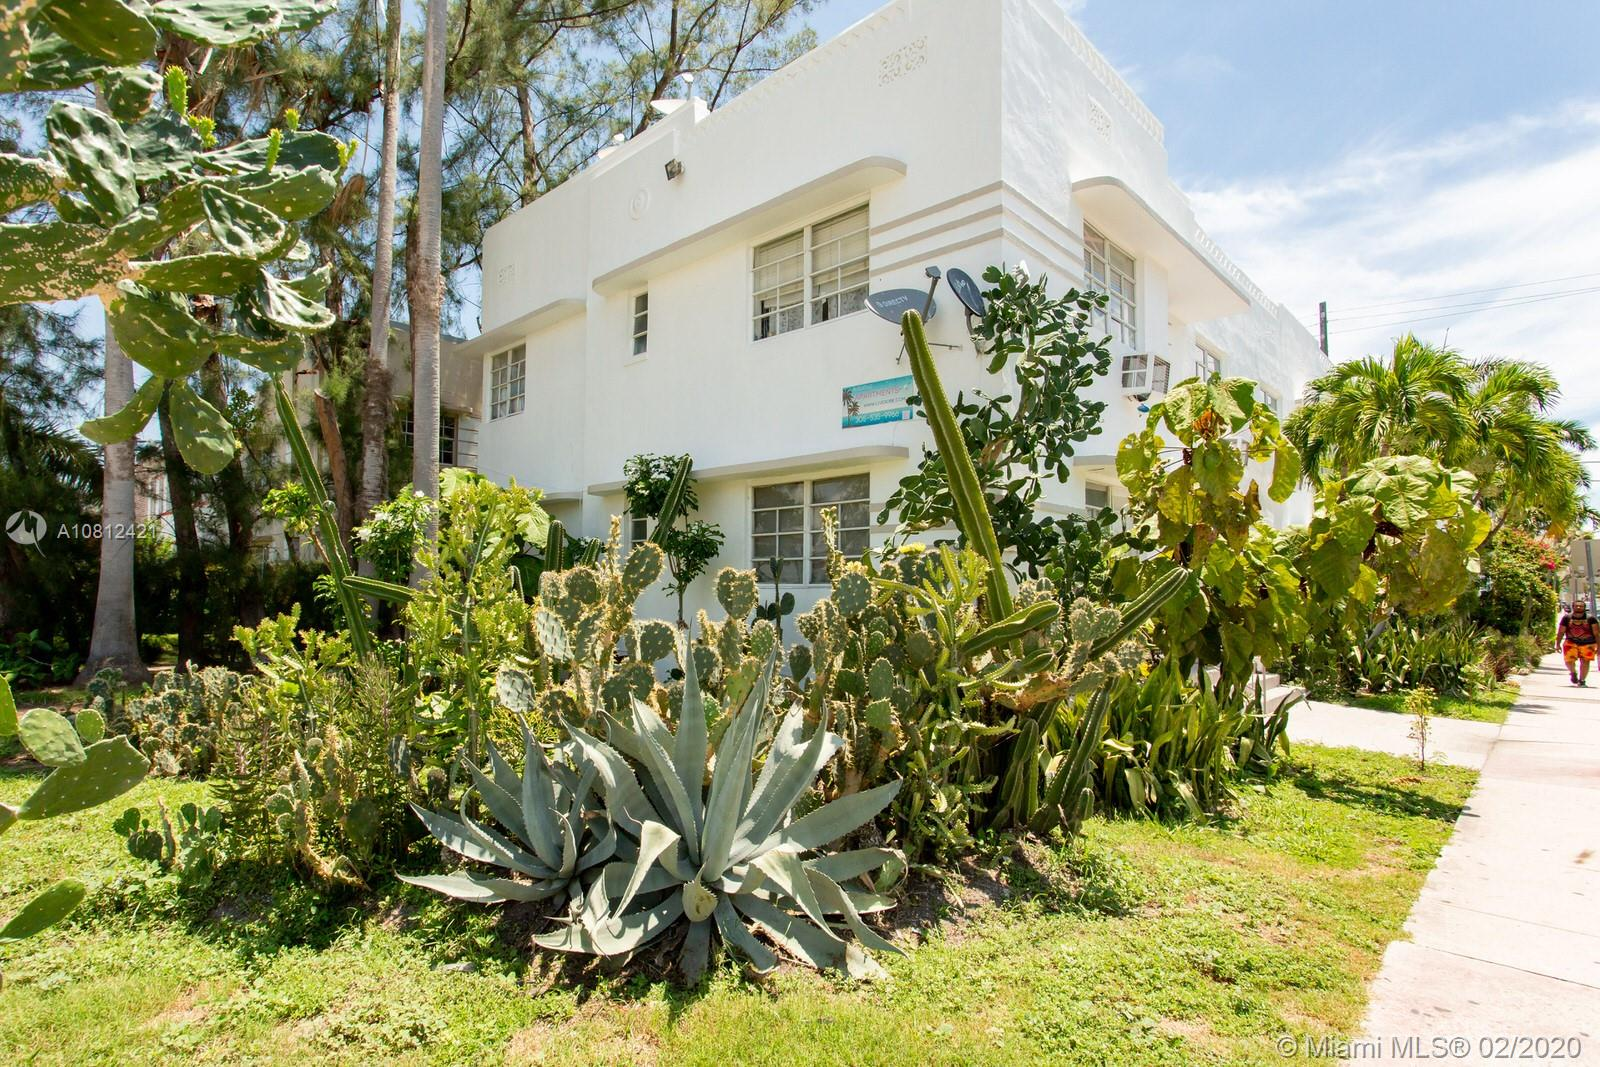 639  13th St #3 For Sale A10812421, FL